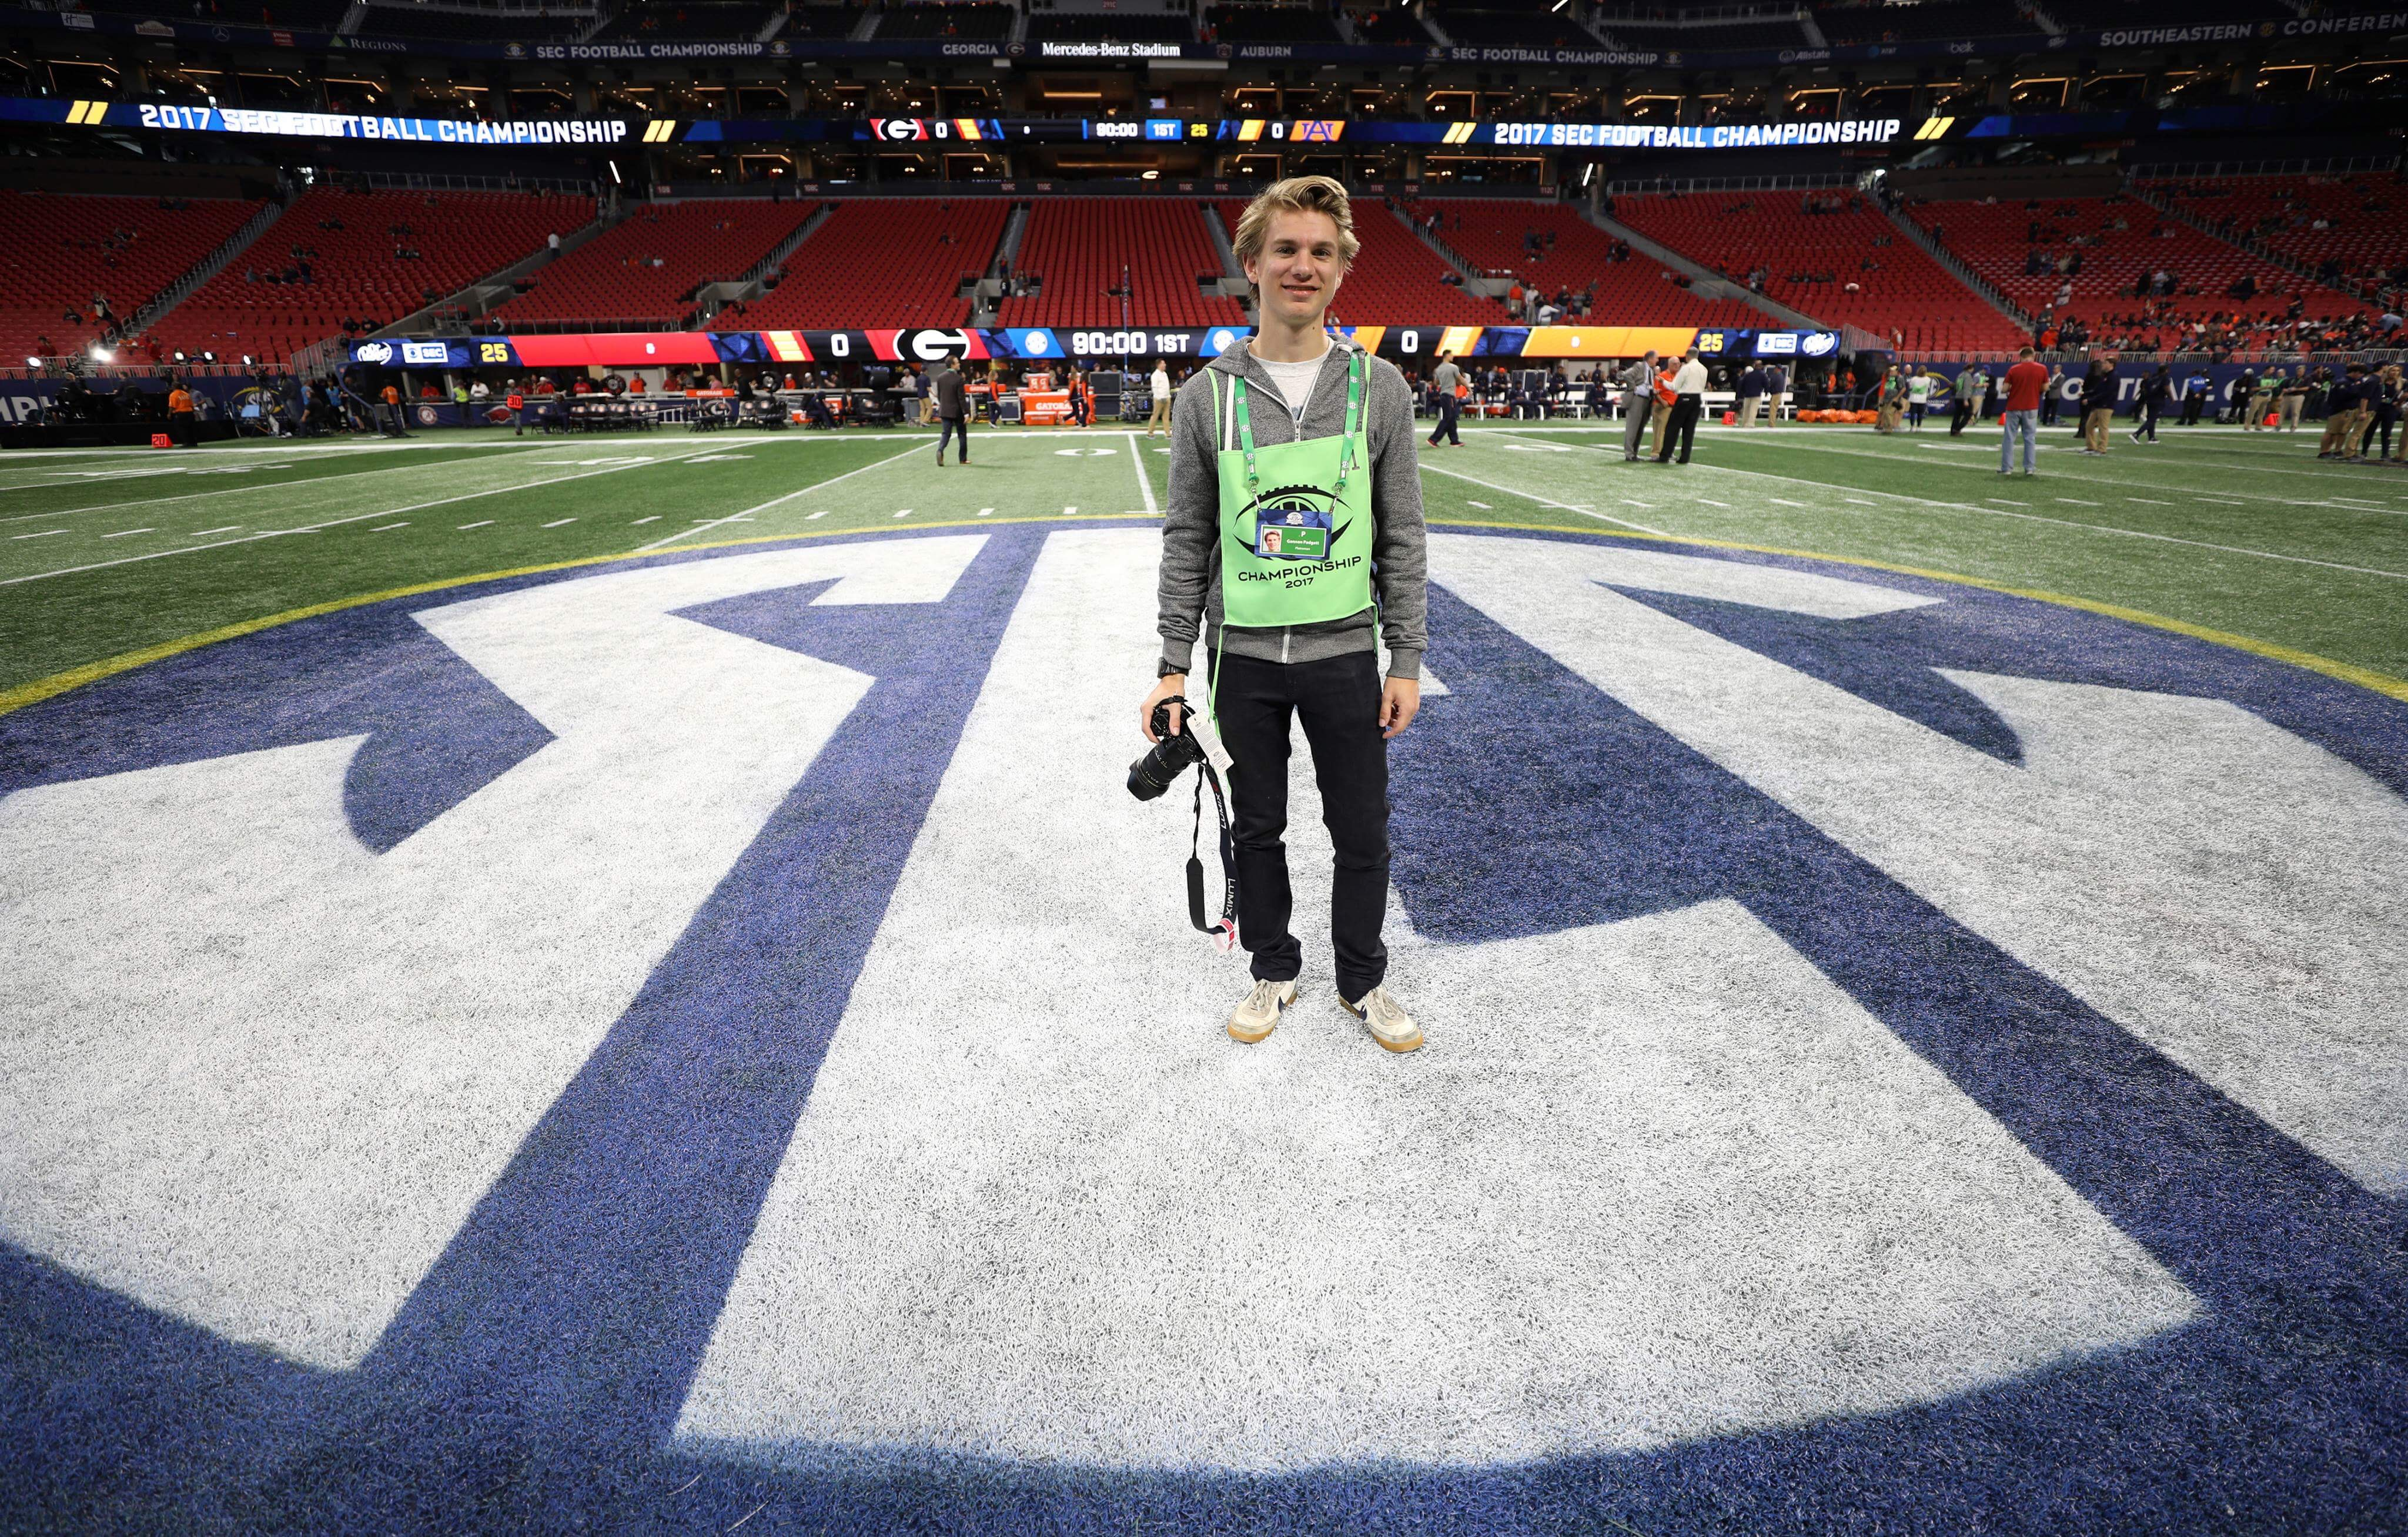 Padgett stands on the SEC emblem on the field prior to the SEC Championship Game holding a camera.